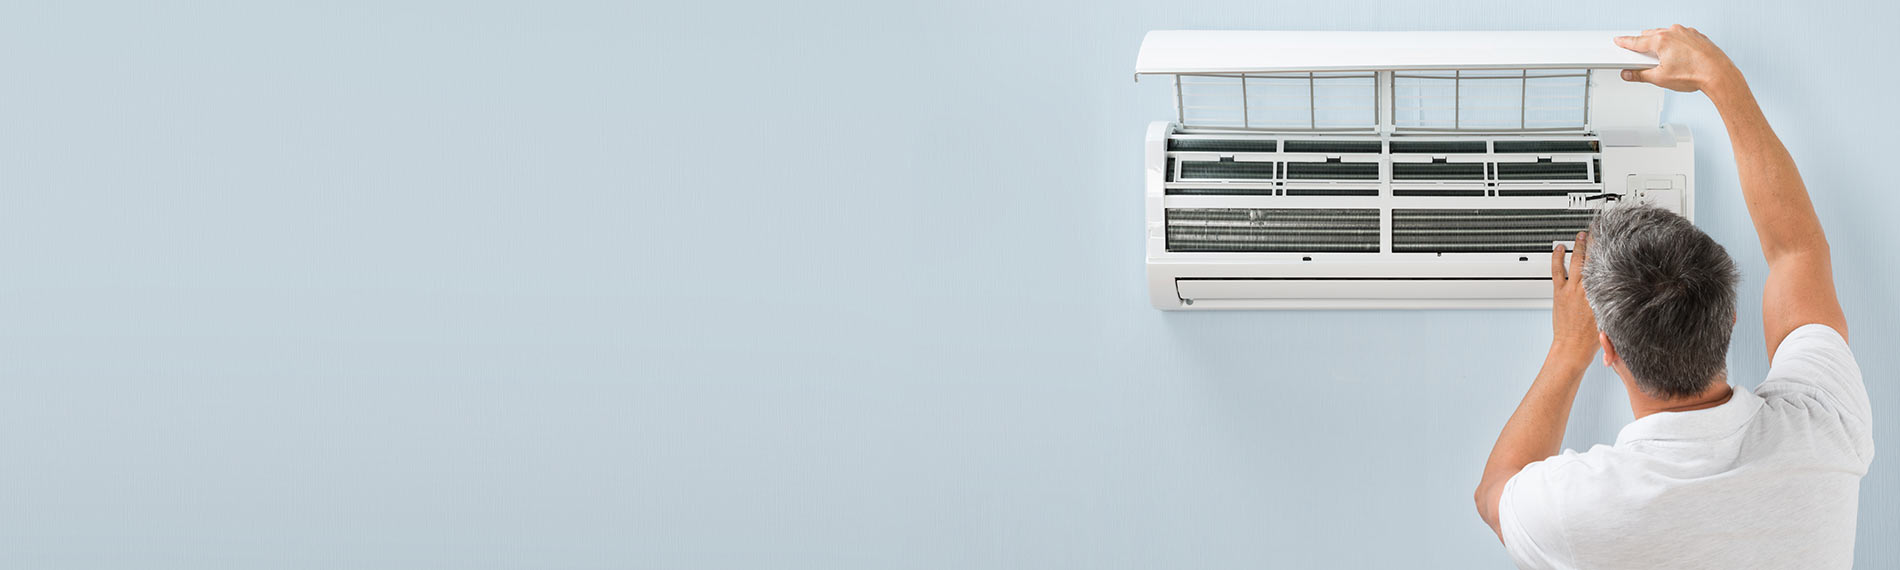 Heating and Cooling Services Toronto